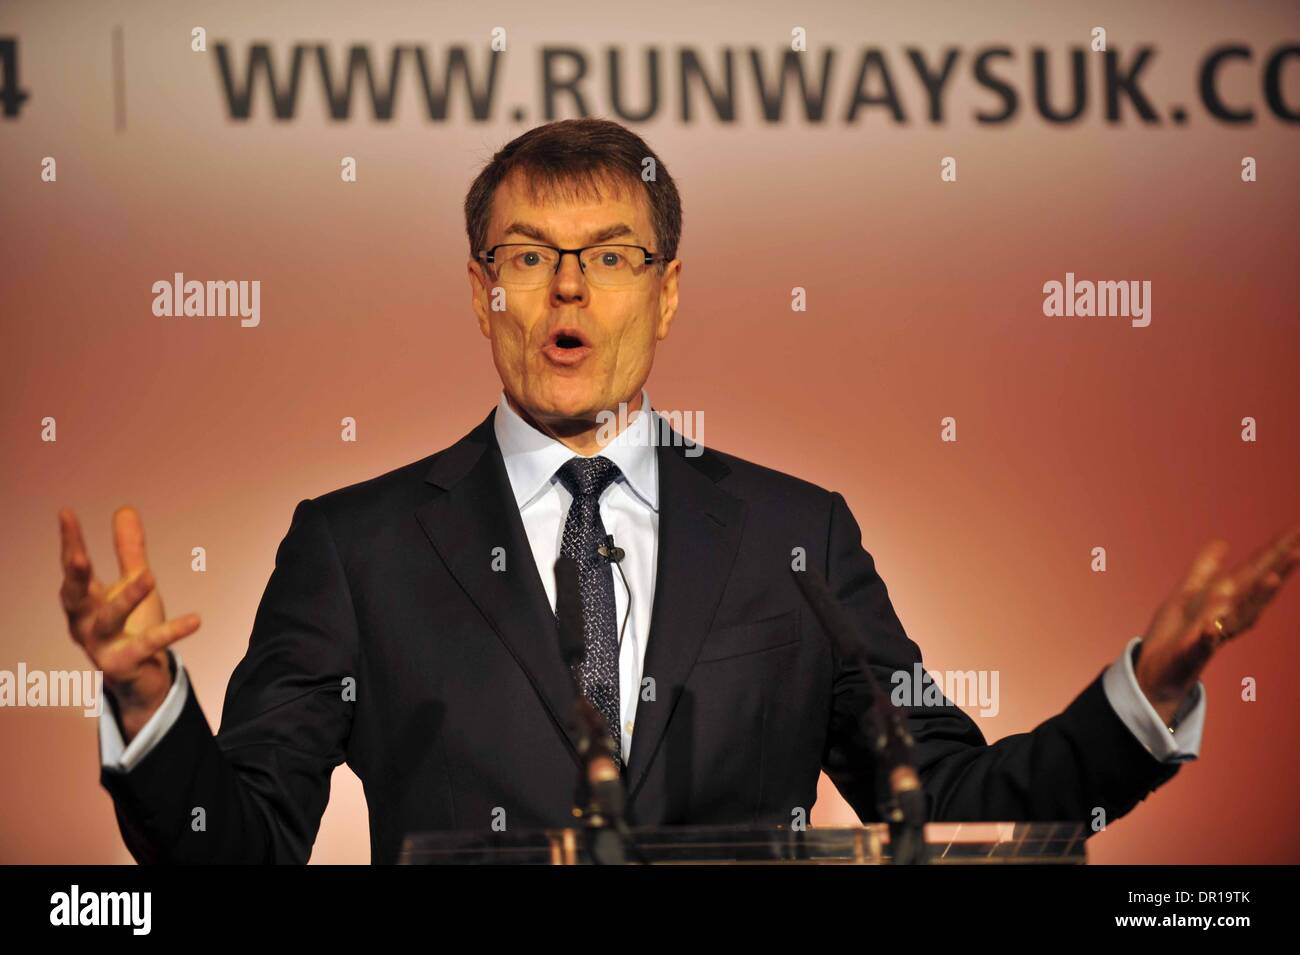 Runways UK conference, London. Britain, UK. Colin Matthews of Heathrow Airport. - Stock Image